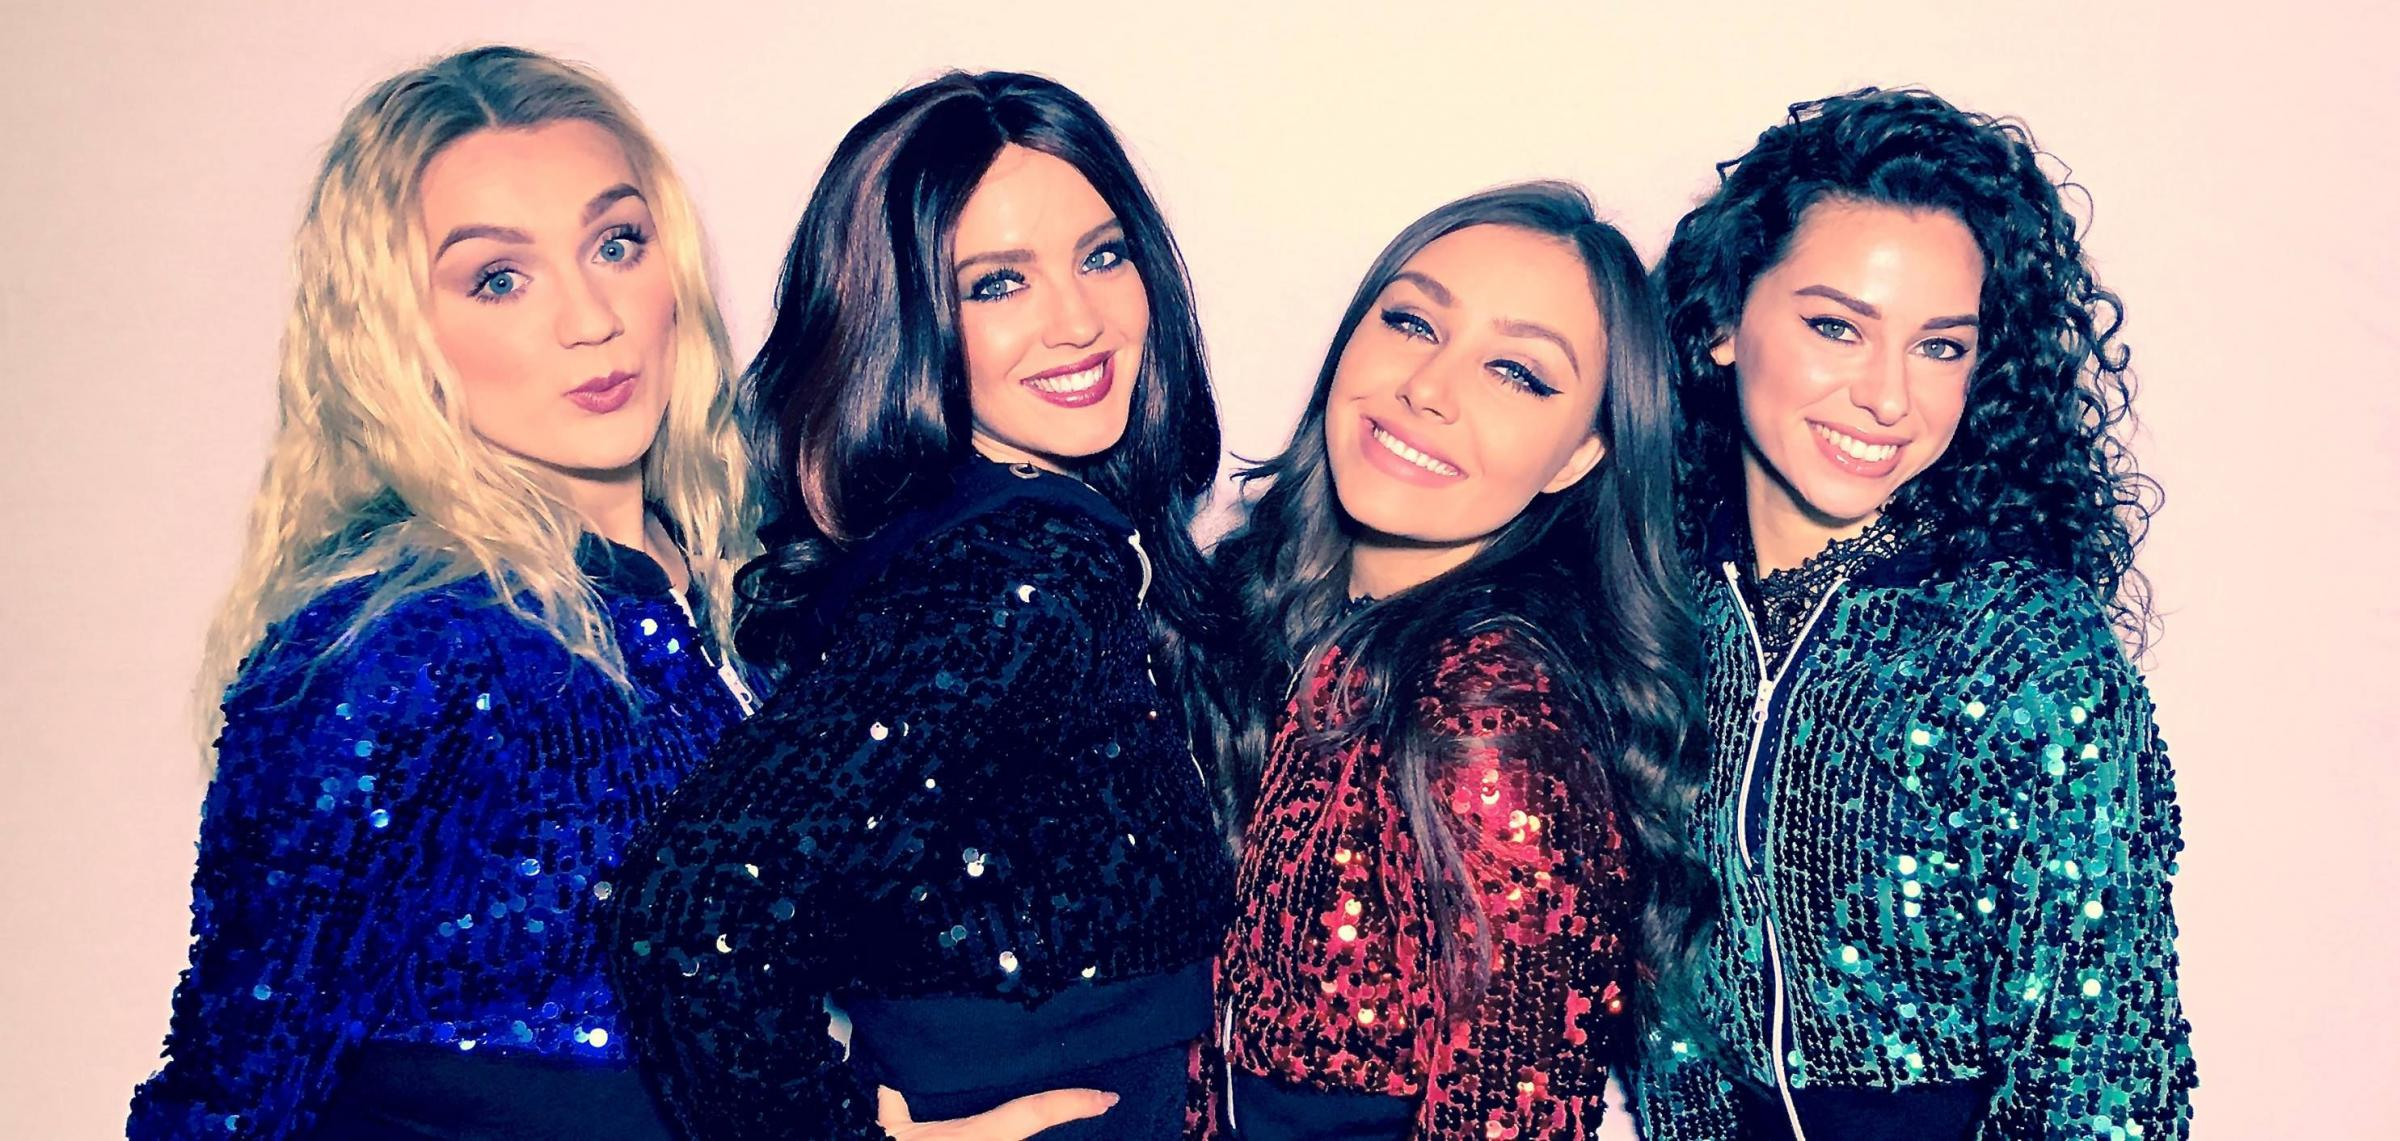 The Little Mix Experience will be performing in Truro in February